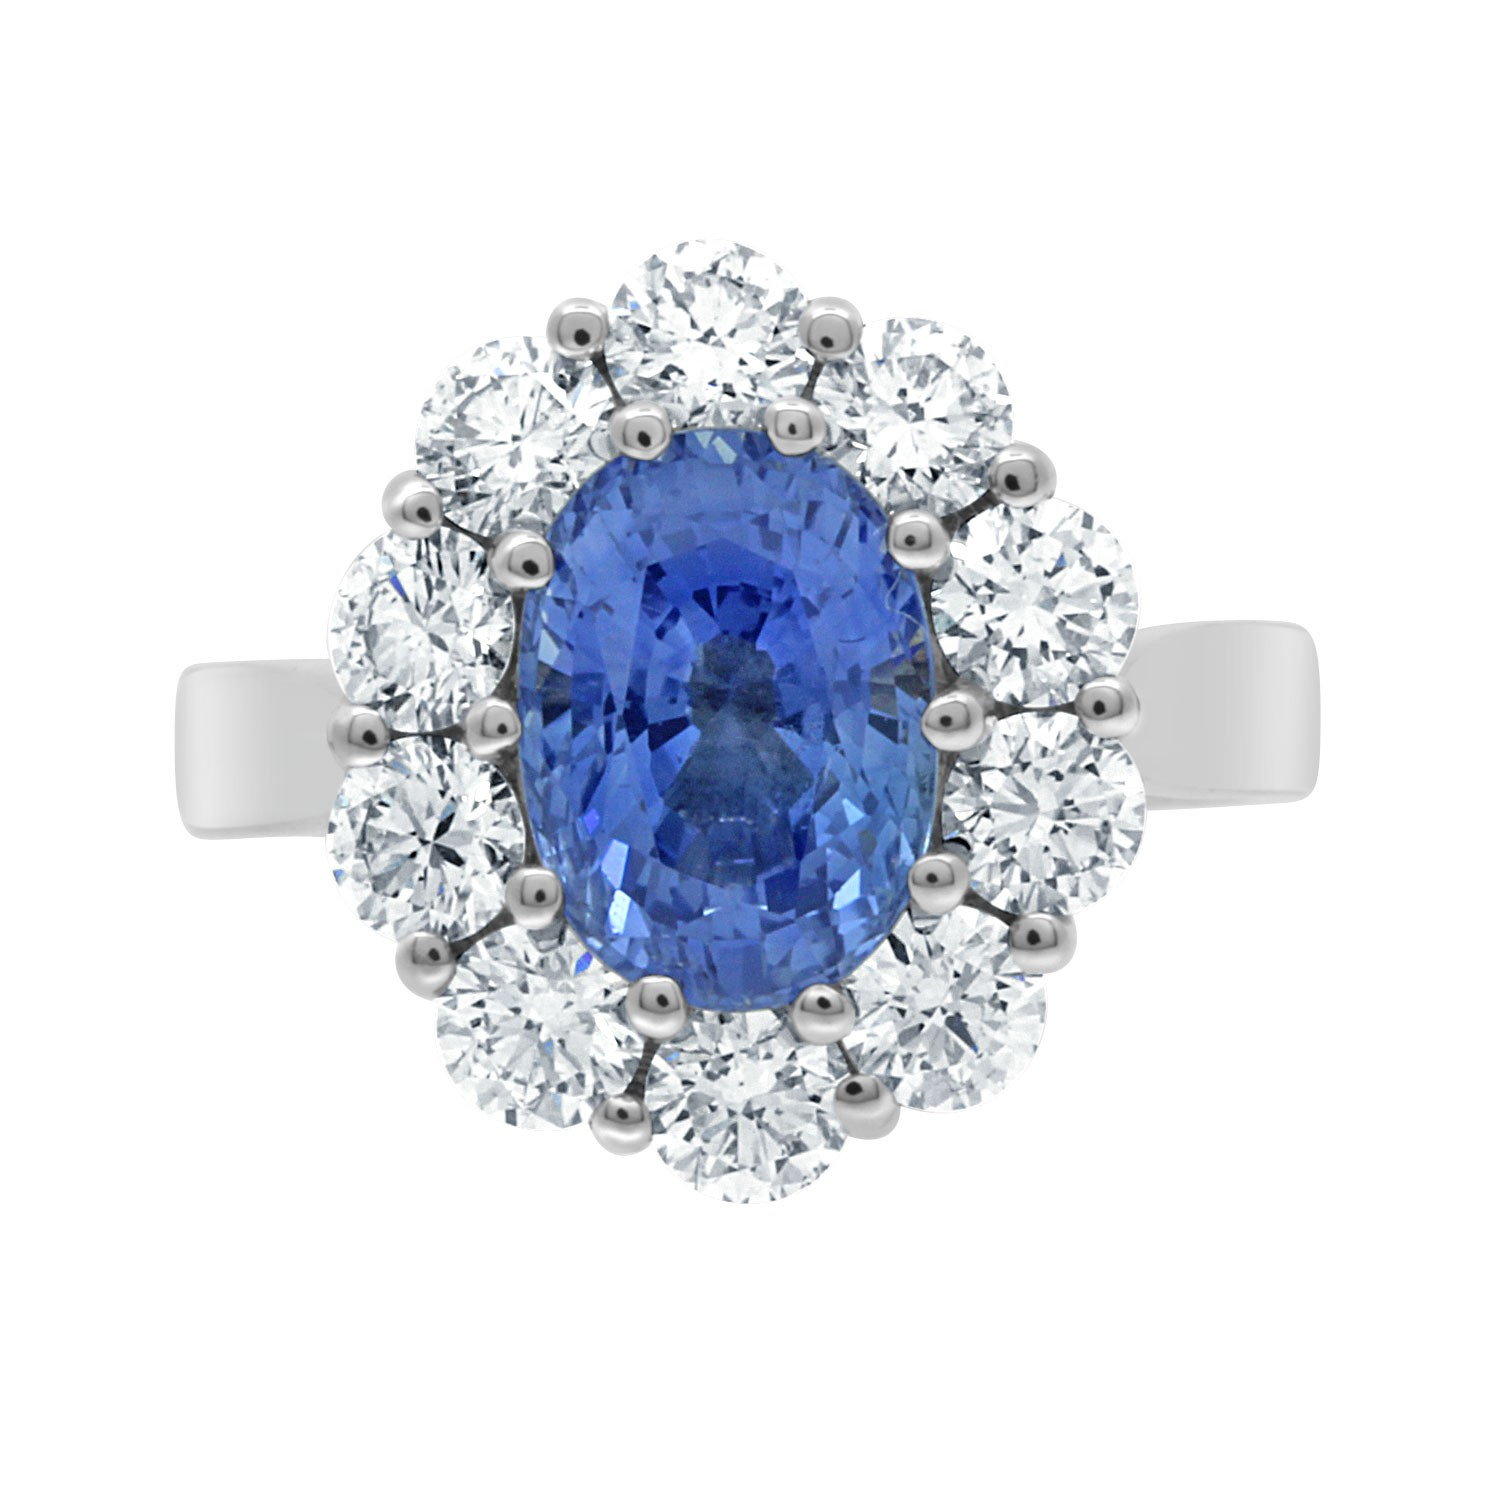 budget county blog co on orange in engagement find rings diamonds n a tiffany jewelry diamond